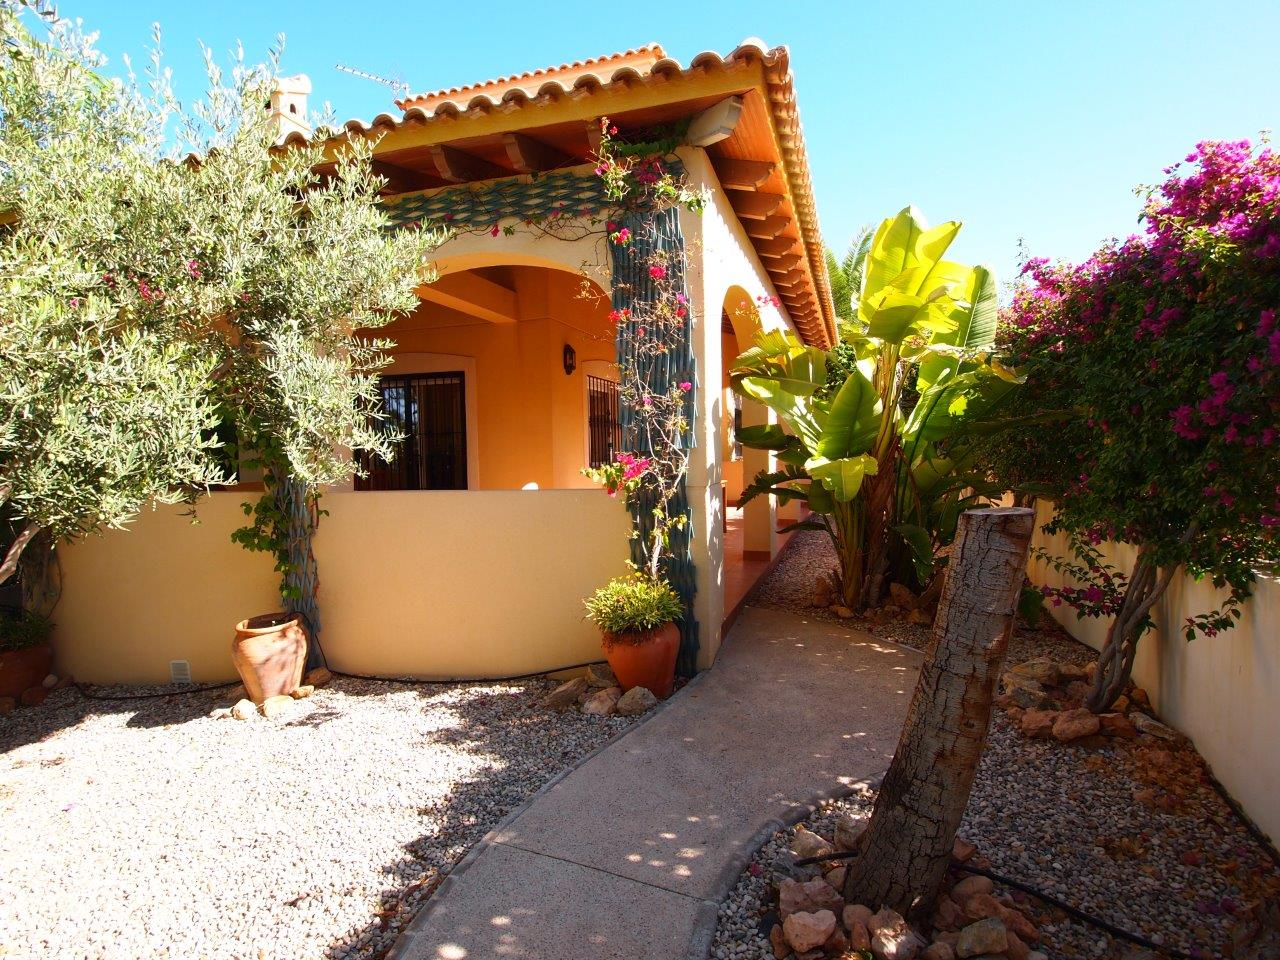 264. RENTAL BEAUTIFUL VILLA WITH A LOVELY GARDEN 3BEDS 2BATHS – GARAJE – 600M2 PLOT – LIMONAR